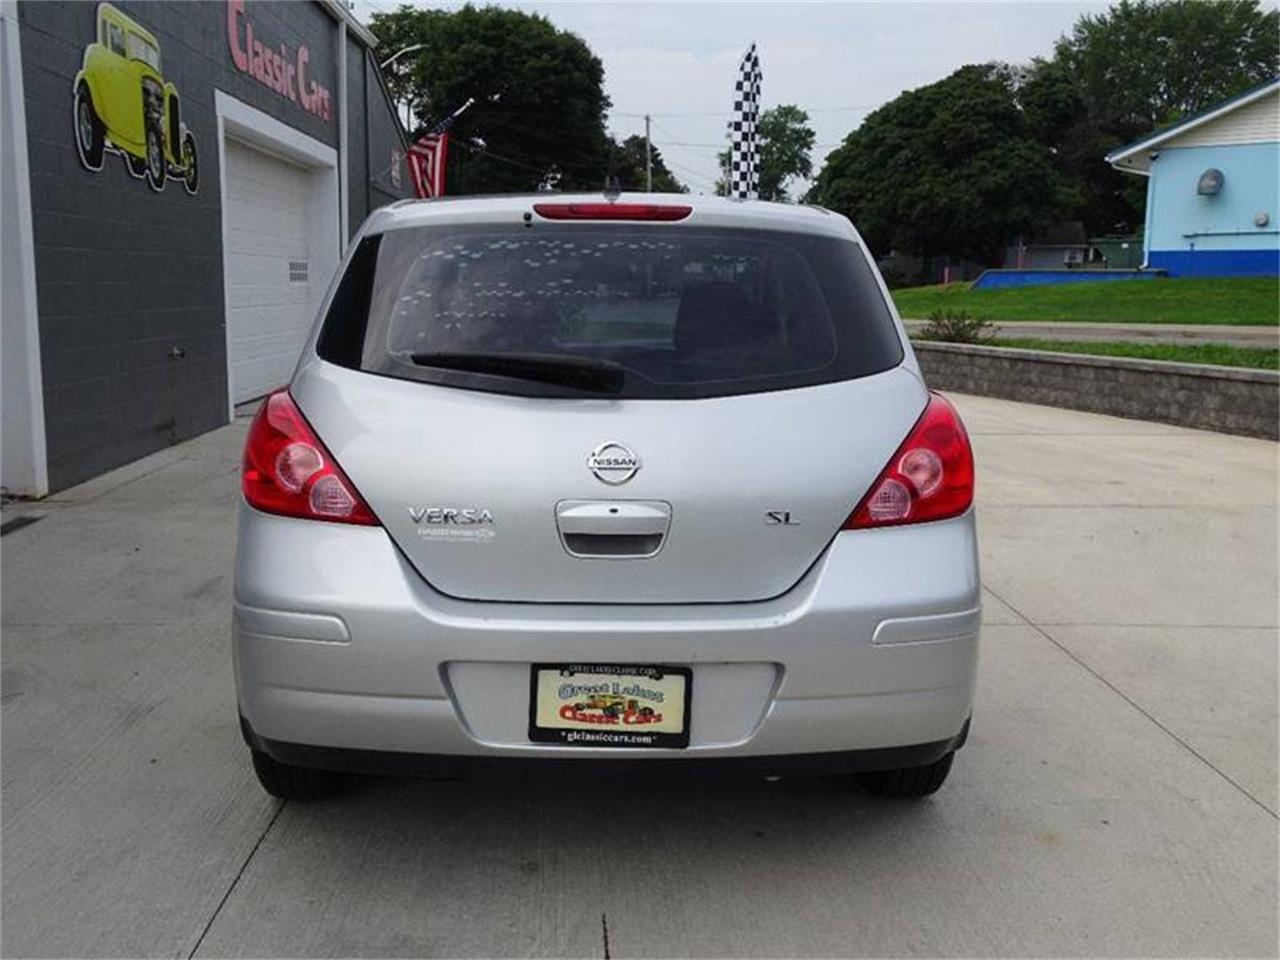 2007 Nissan Versa for sale in Hilton, NY – photo 22